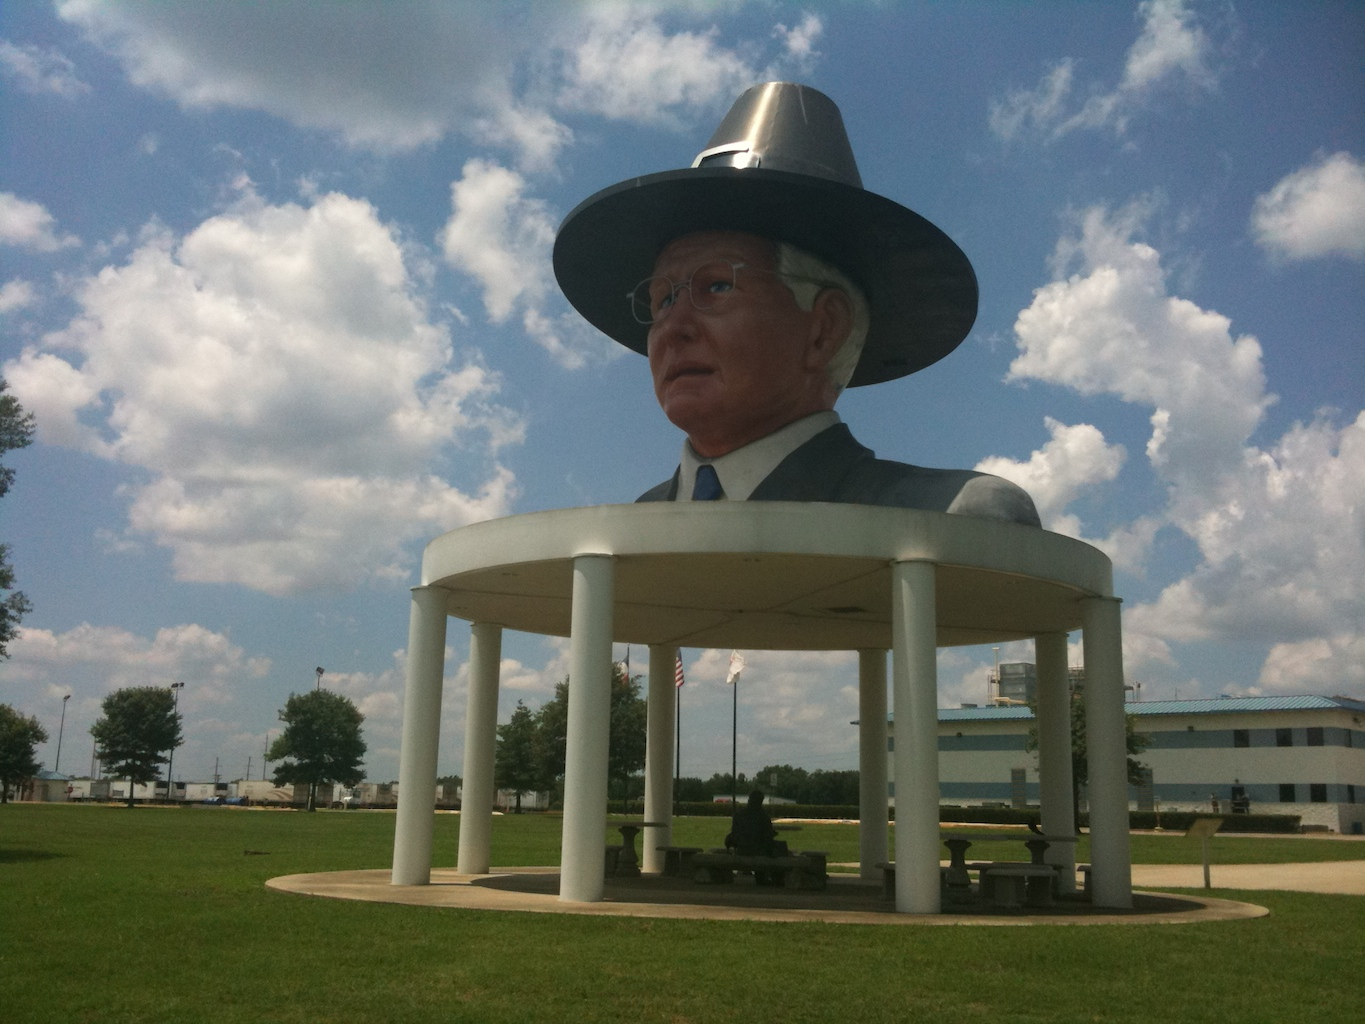 More Roadside Attractions…Southern-style